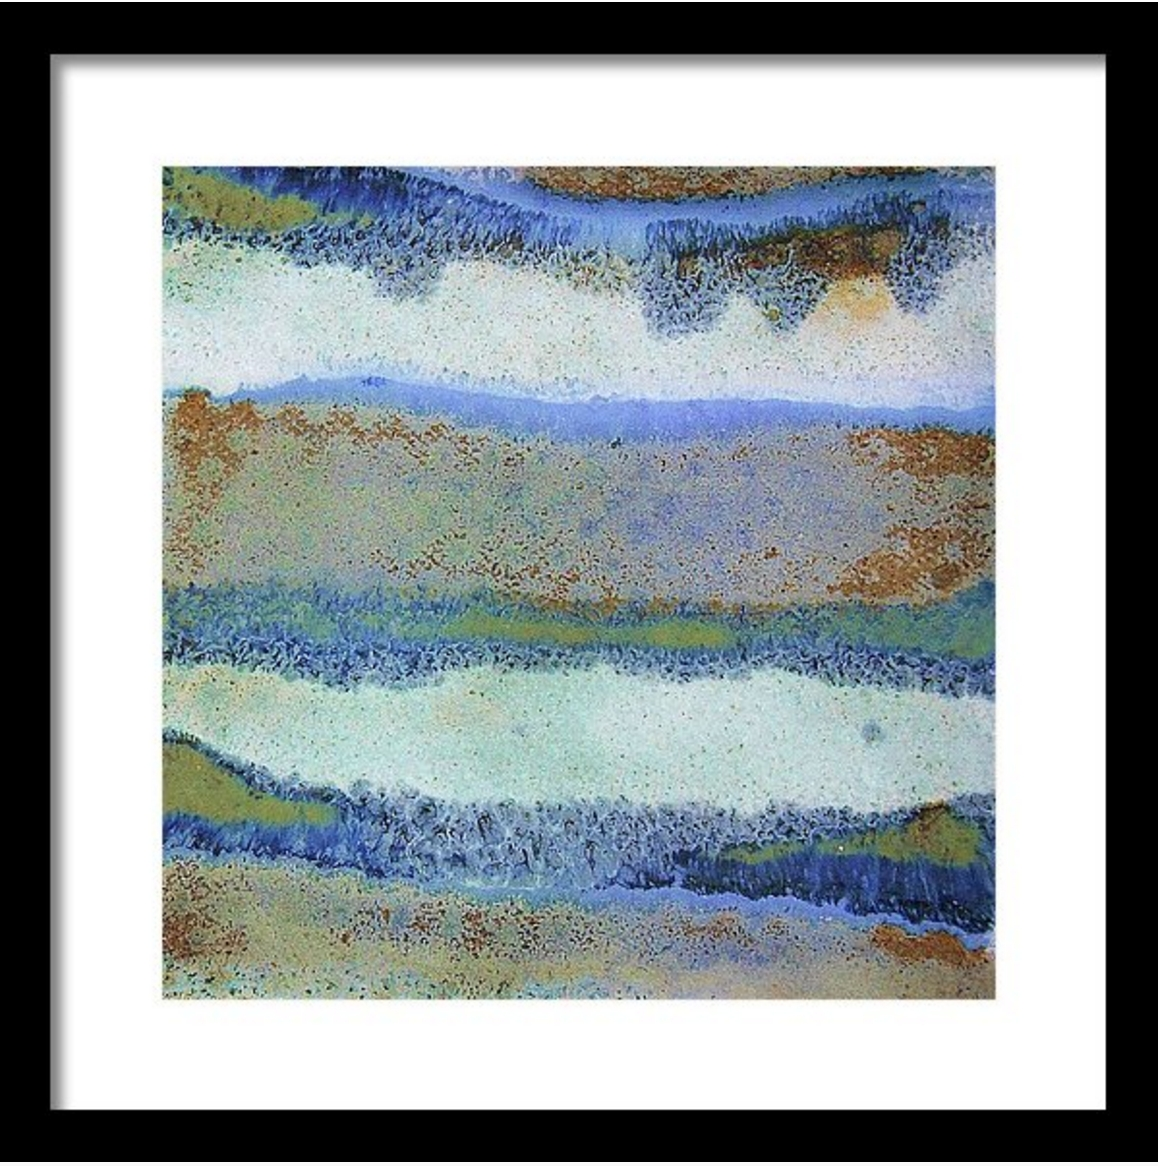 Abstract Framed Wall Art – Square #33 | Contemporary Frames Intended For Recent Blue Canvas Abstract Wall Art (View 18 of 20)